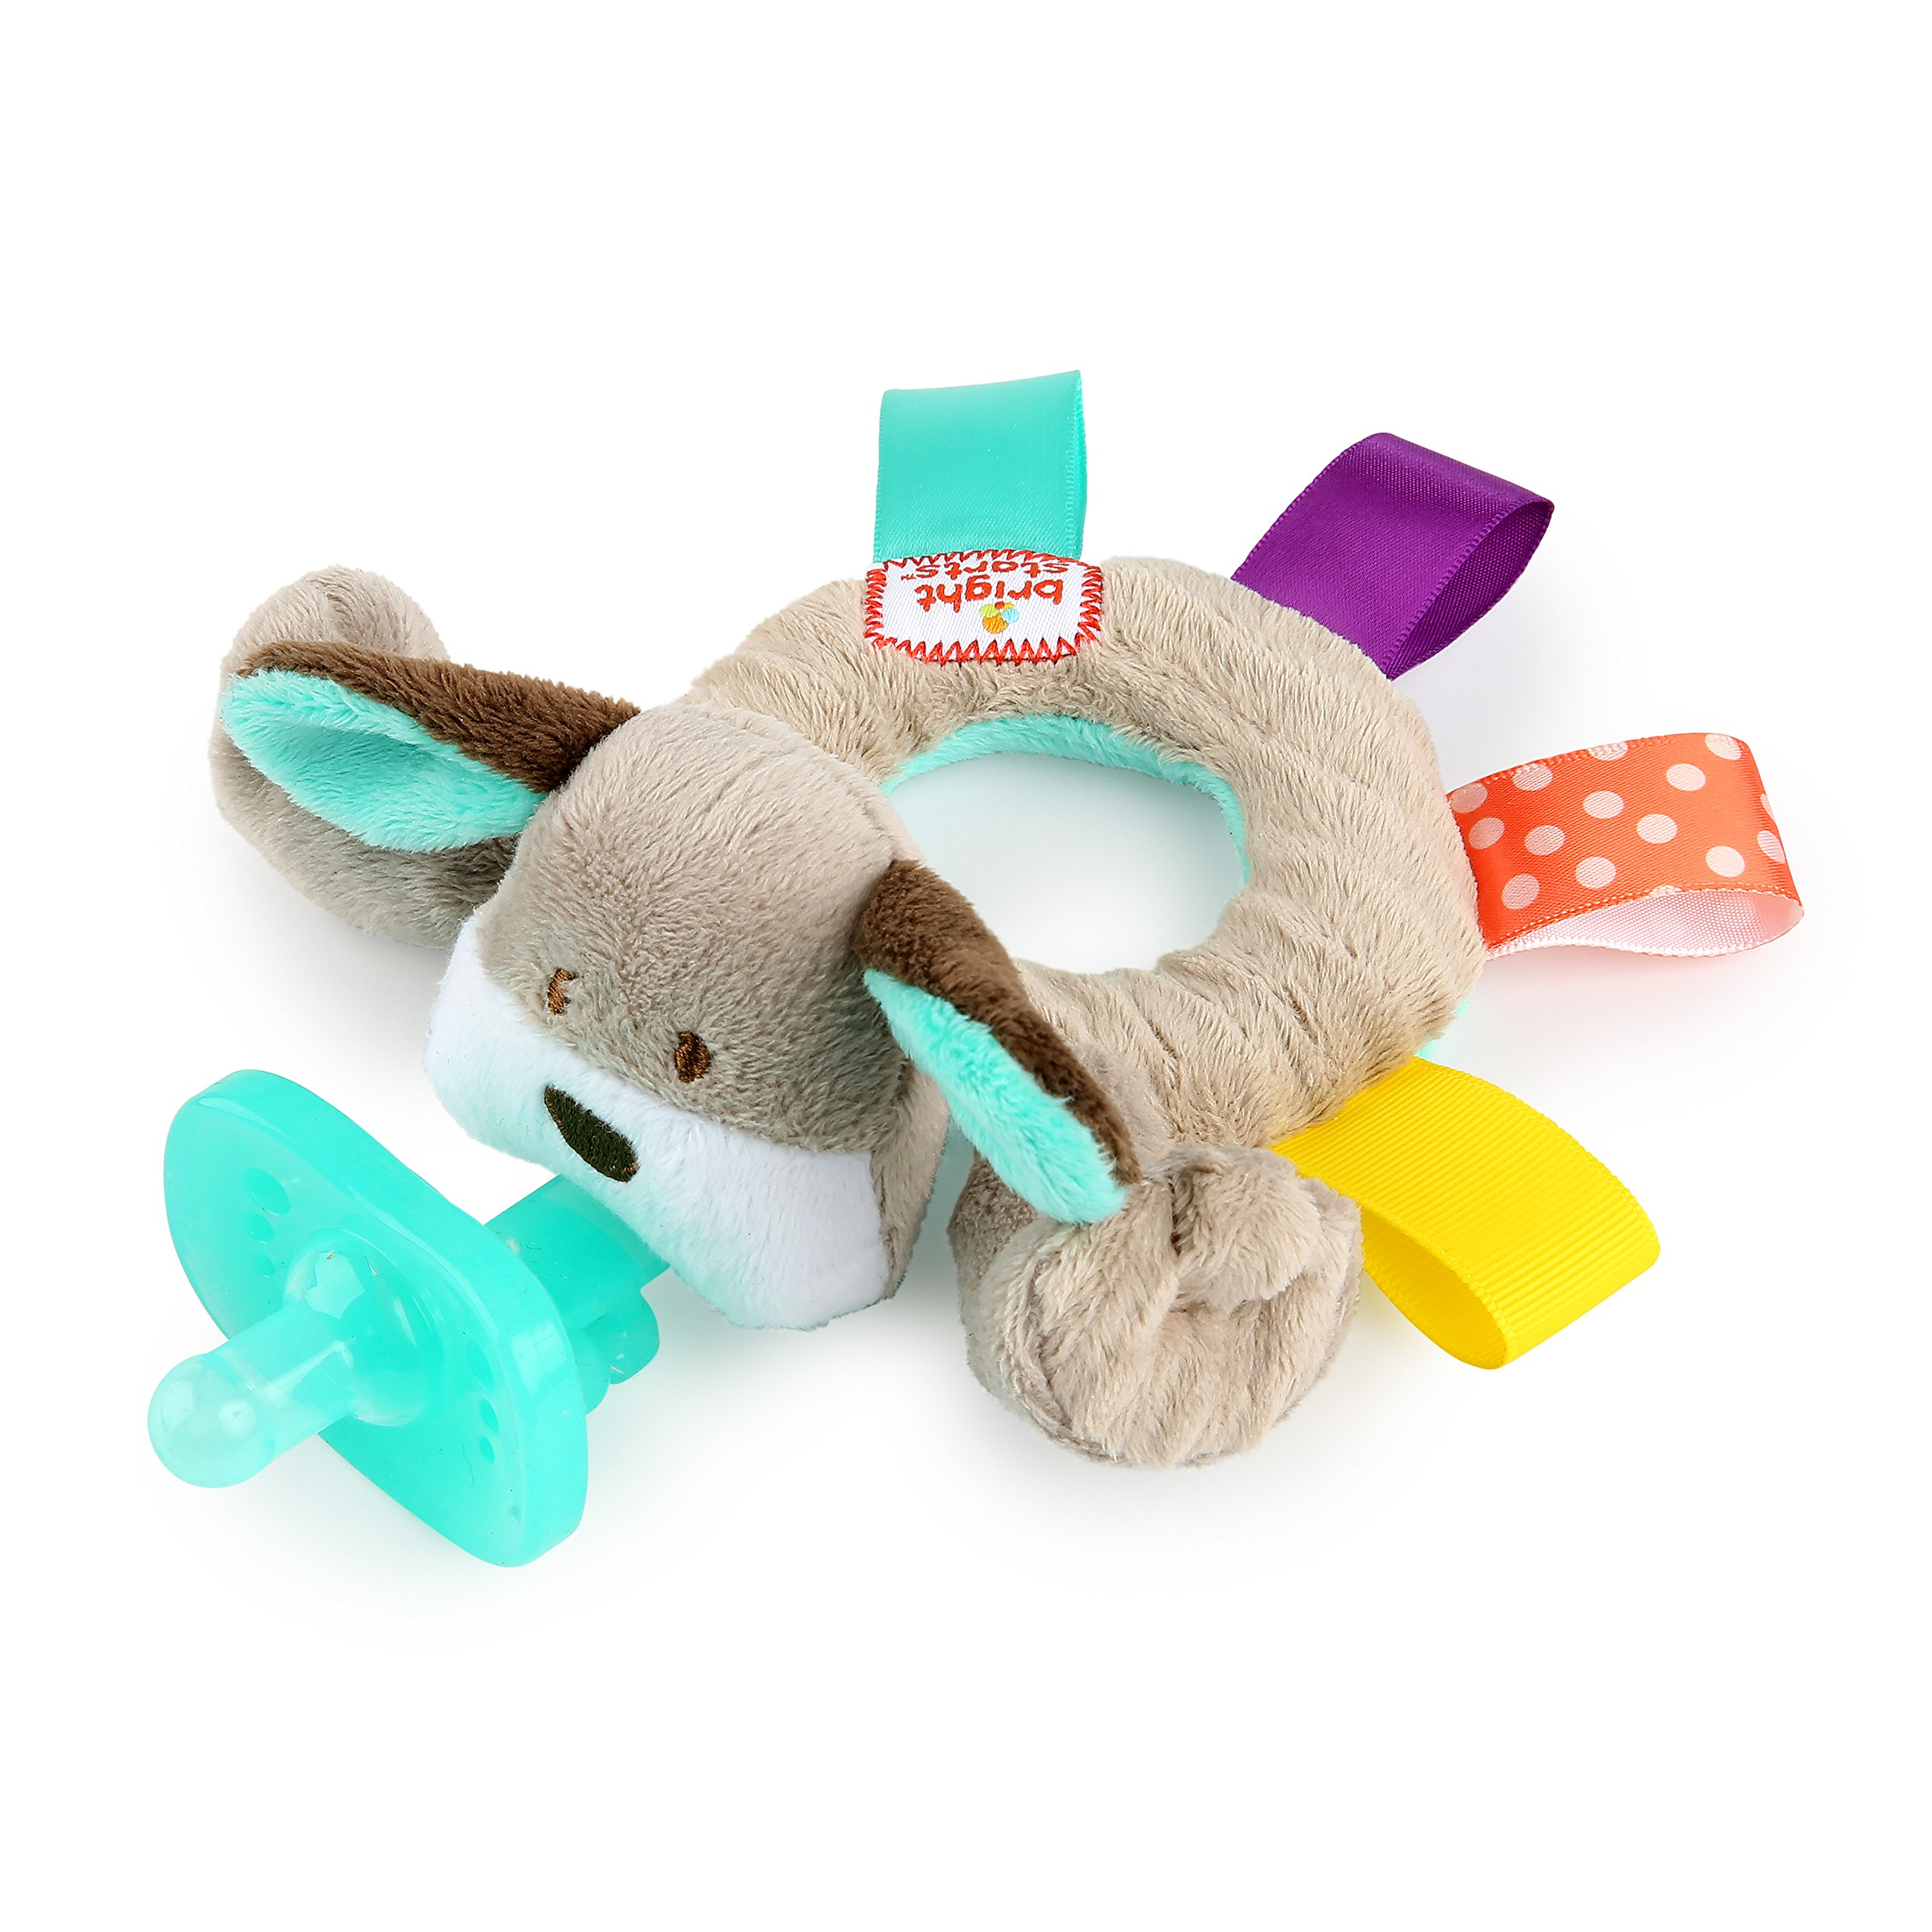 Amazon.com : Bright Starts Taggies Cozy Coo Ring Pal, Blue : Baby